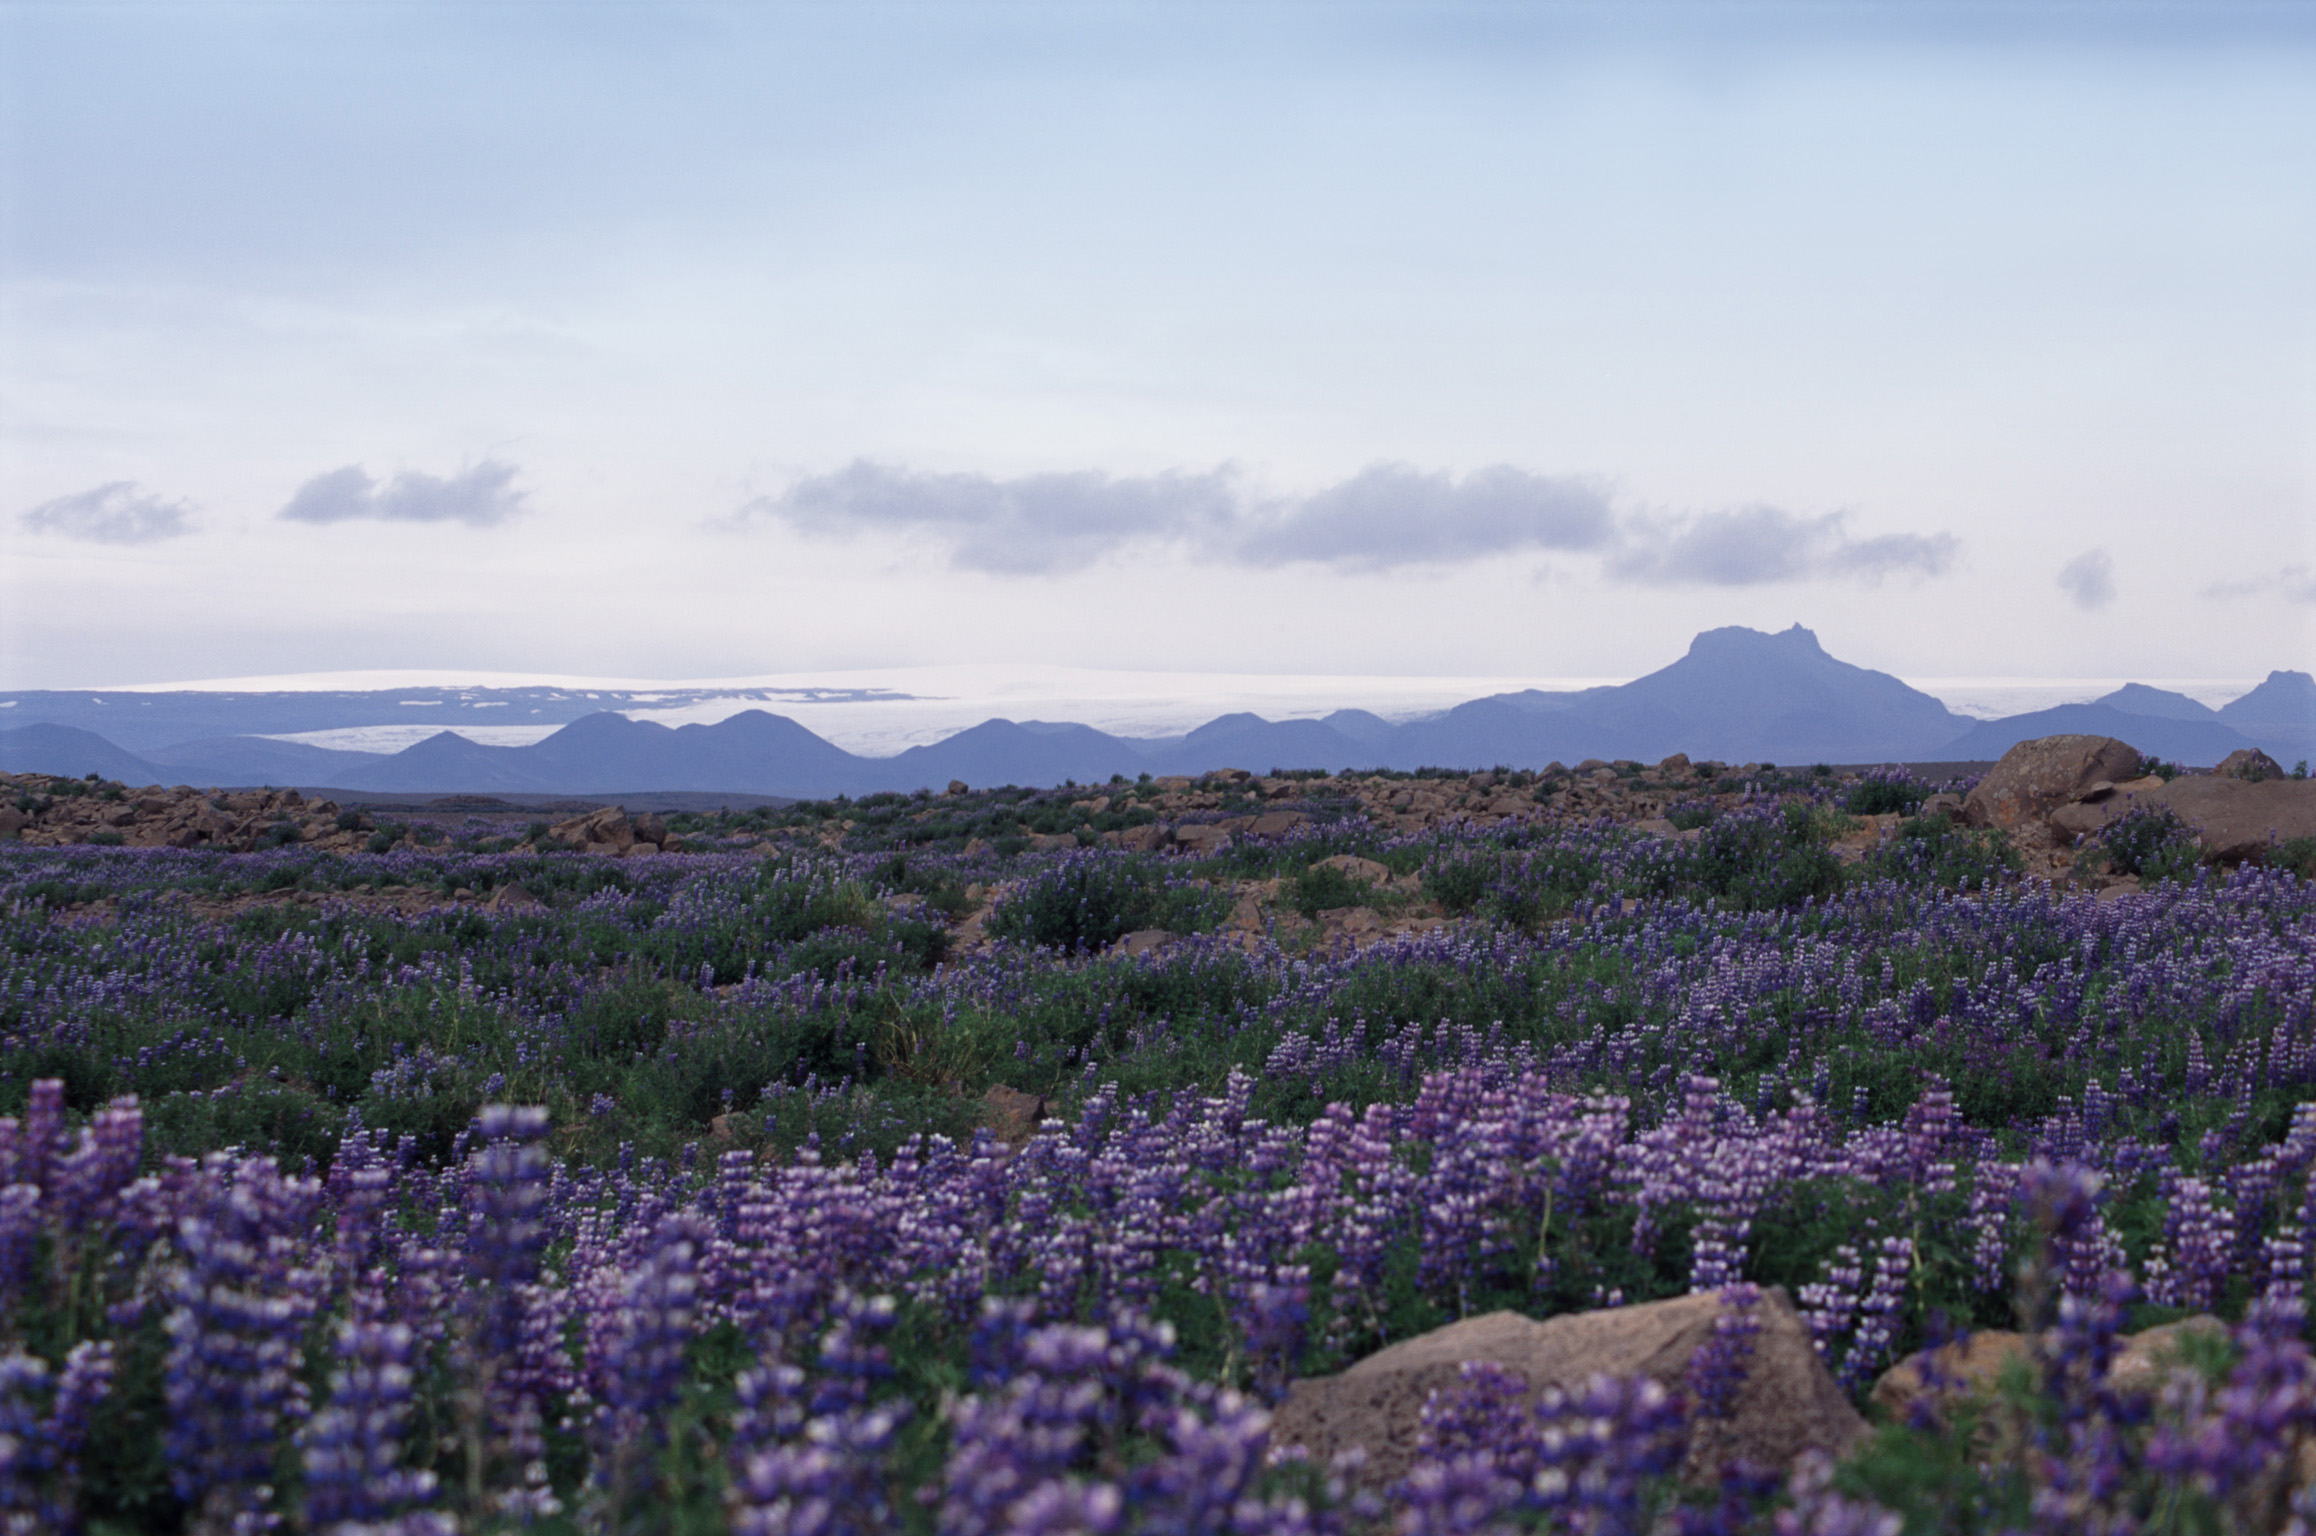 Iceland panorama with a scenic landscape of blue lupins growing in a meadow with distant volcanic moutain ranges